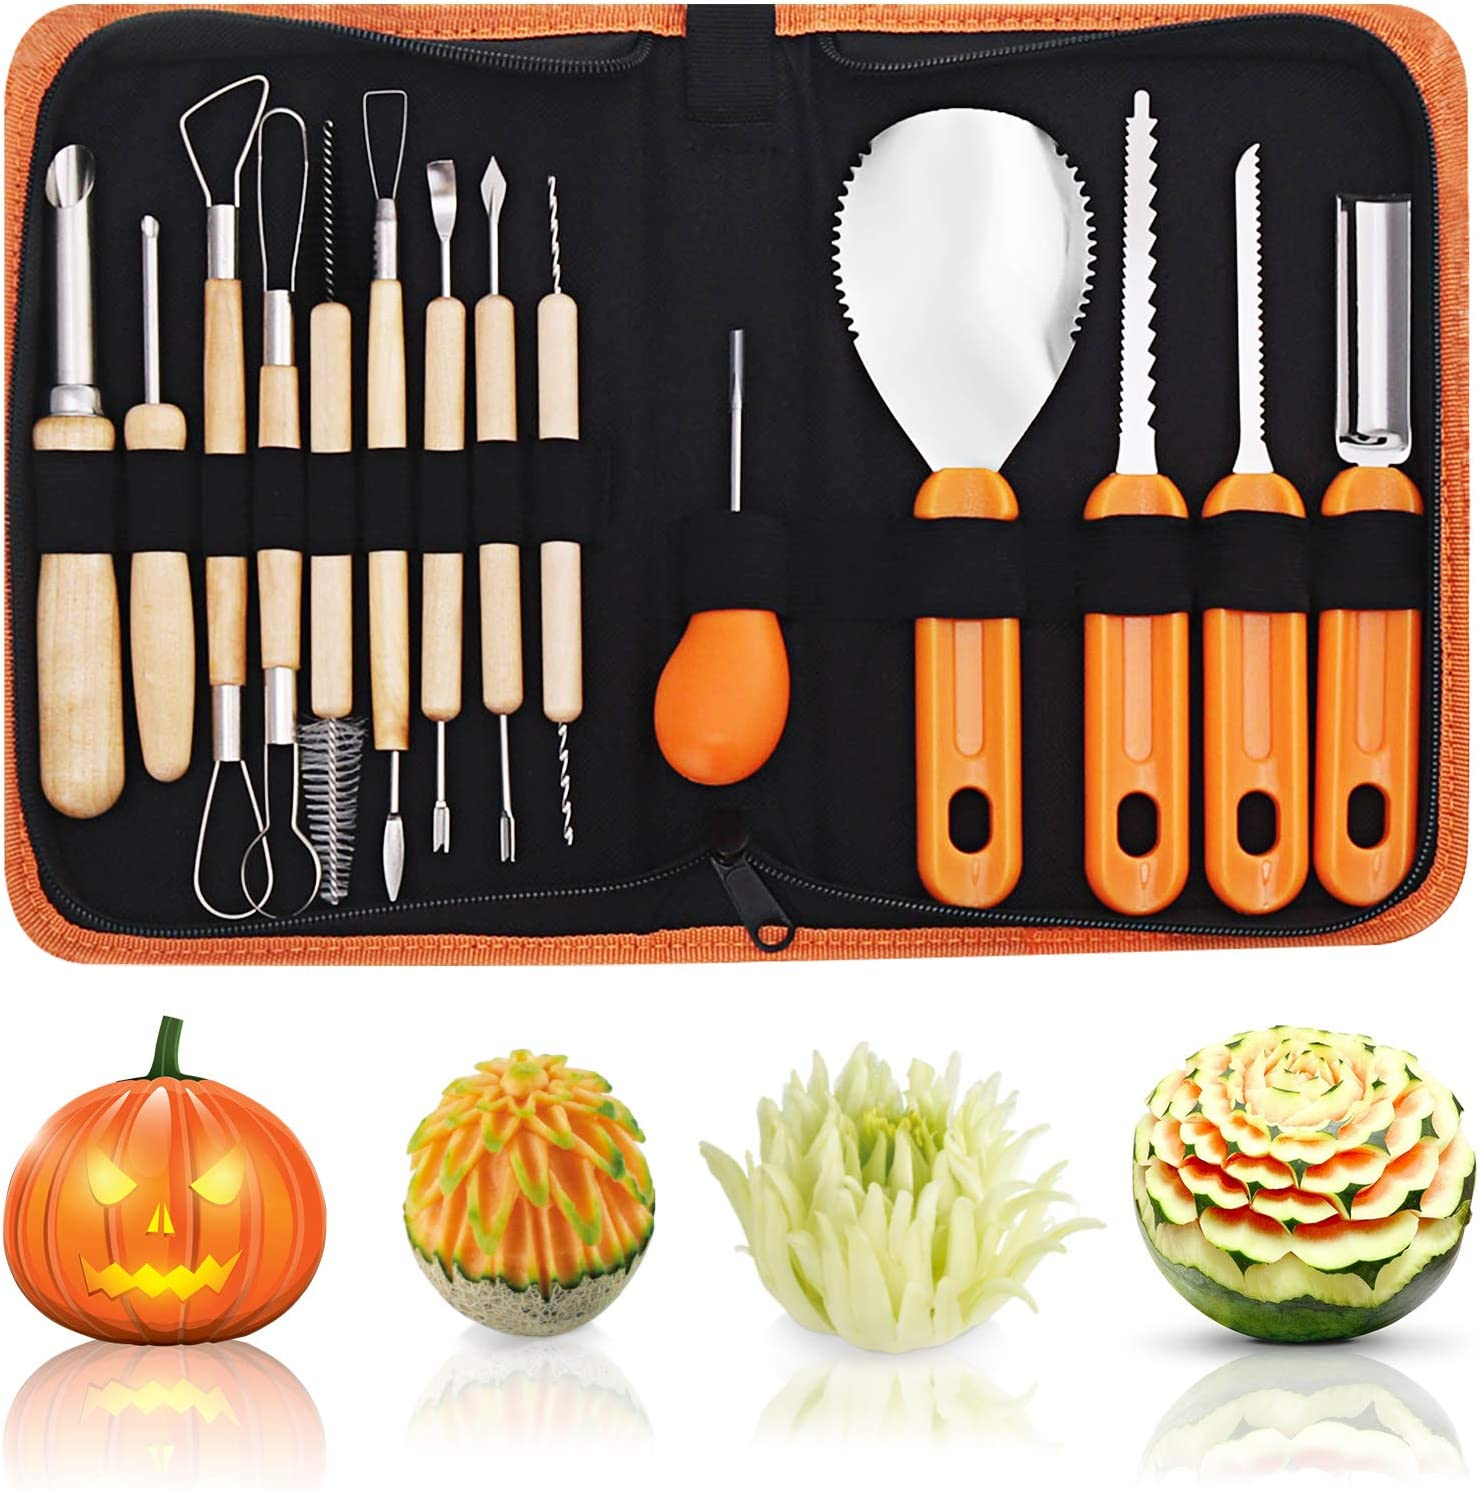 Culinary Carving Tool Kit for Fruit Vegetable, NASUM Pumpkin Carving Set 14 Pieces, Professional Pumpkin Cutting accessories Tools,Soft Grip Rubber Handle Stainless Steel Carving Kit